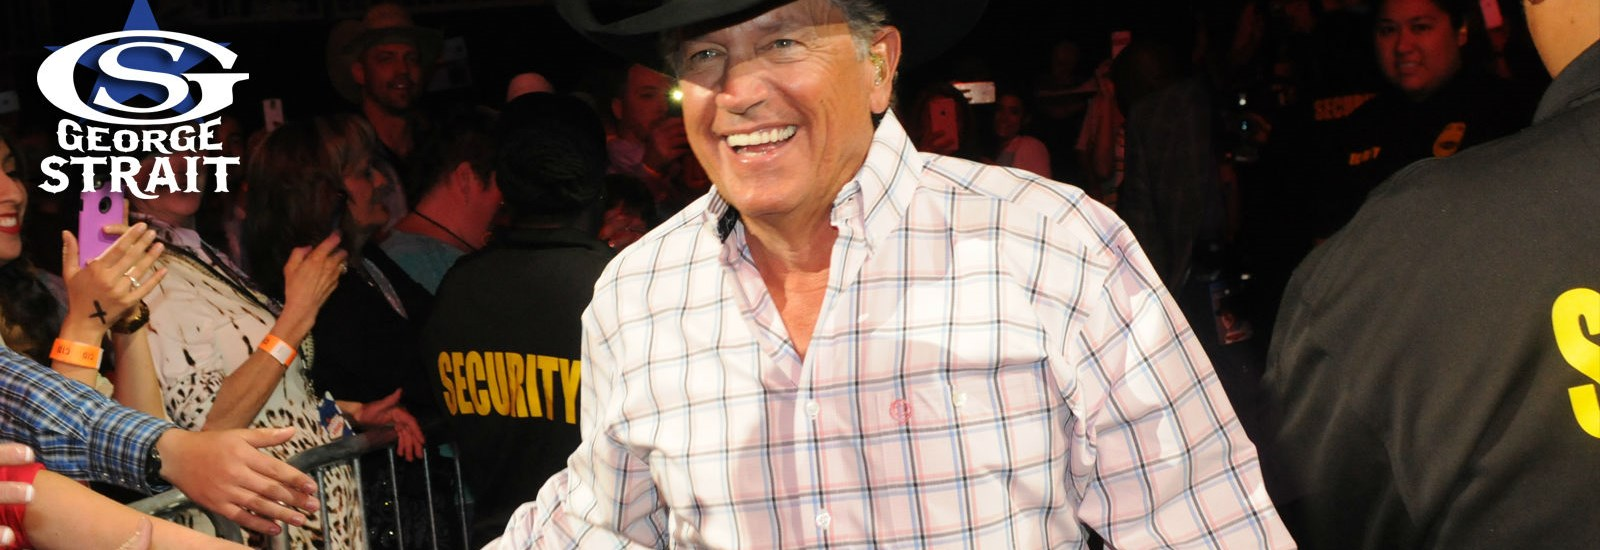 george strait meet and greet auction